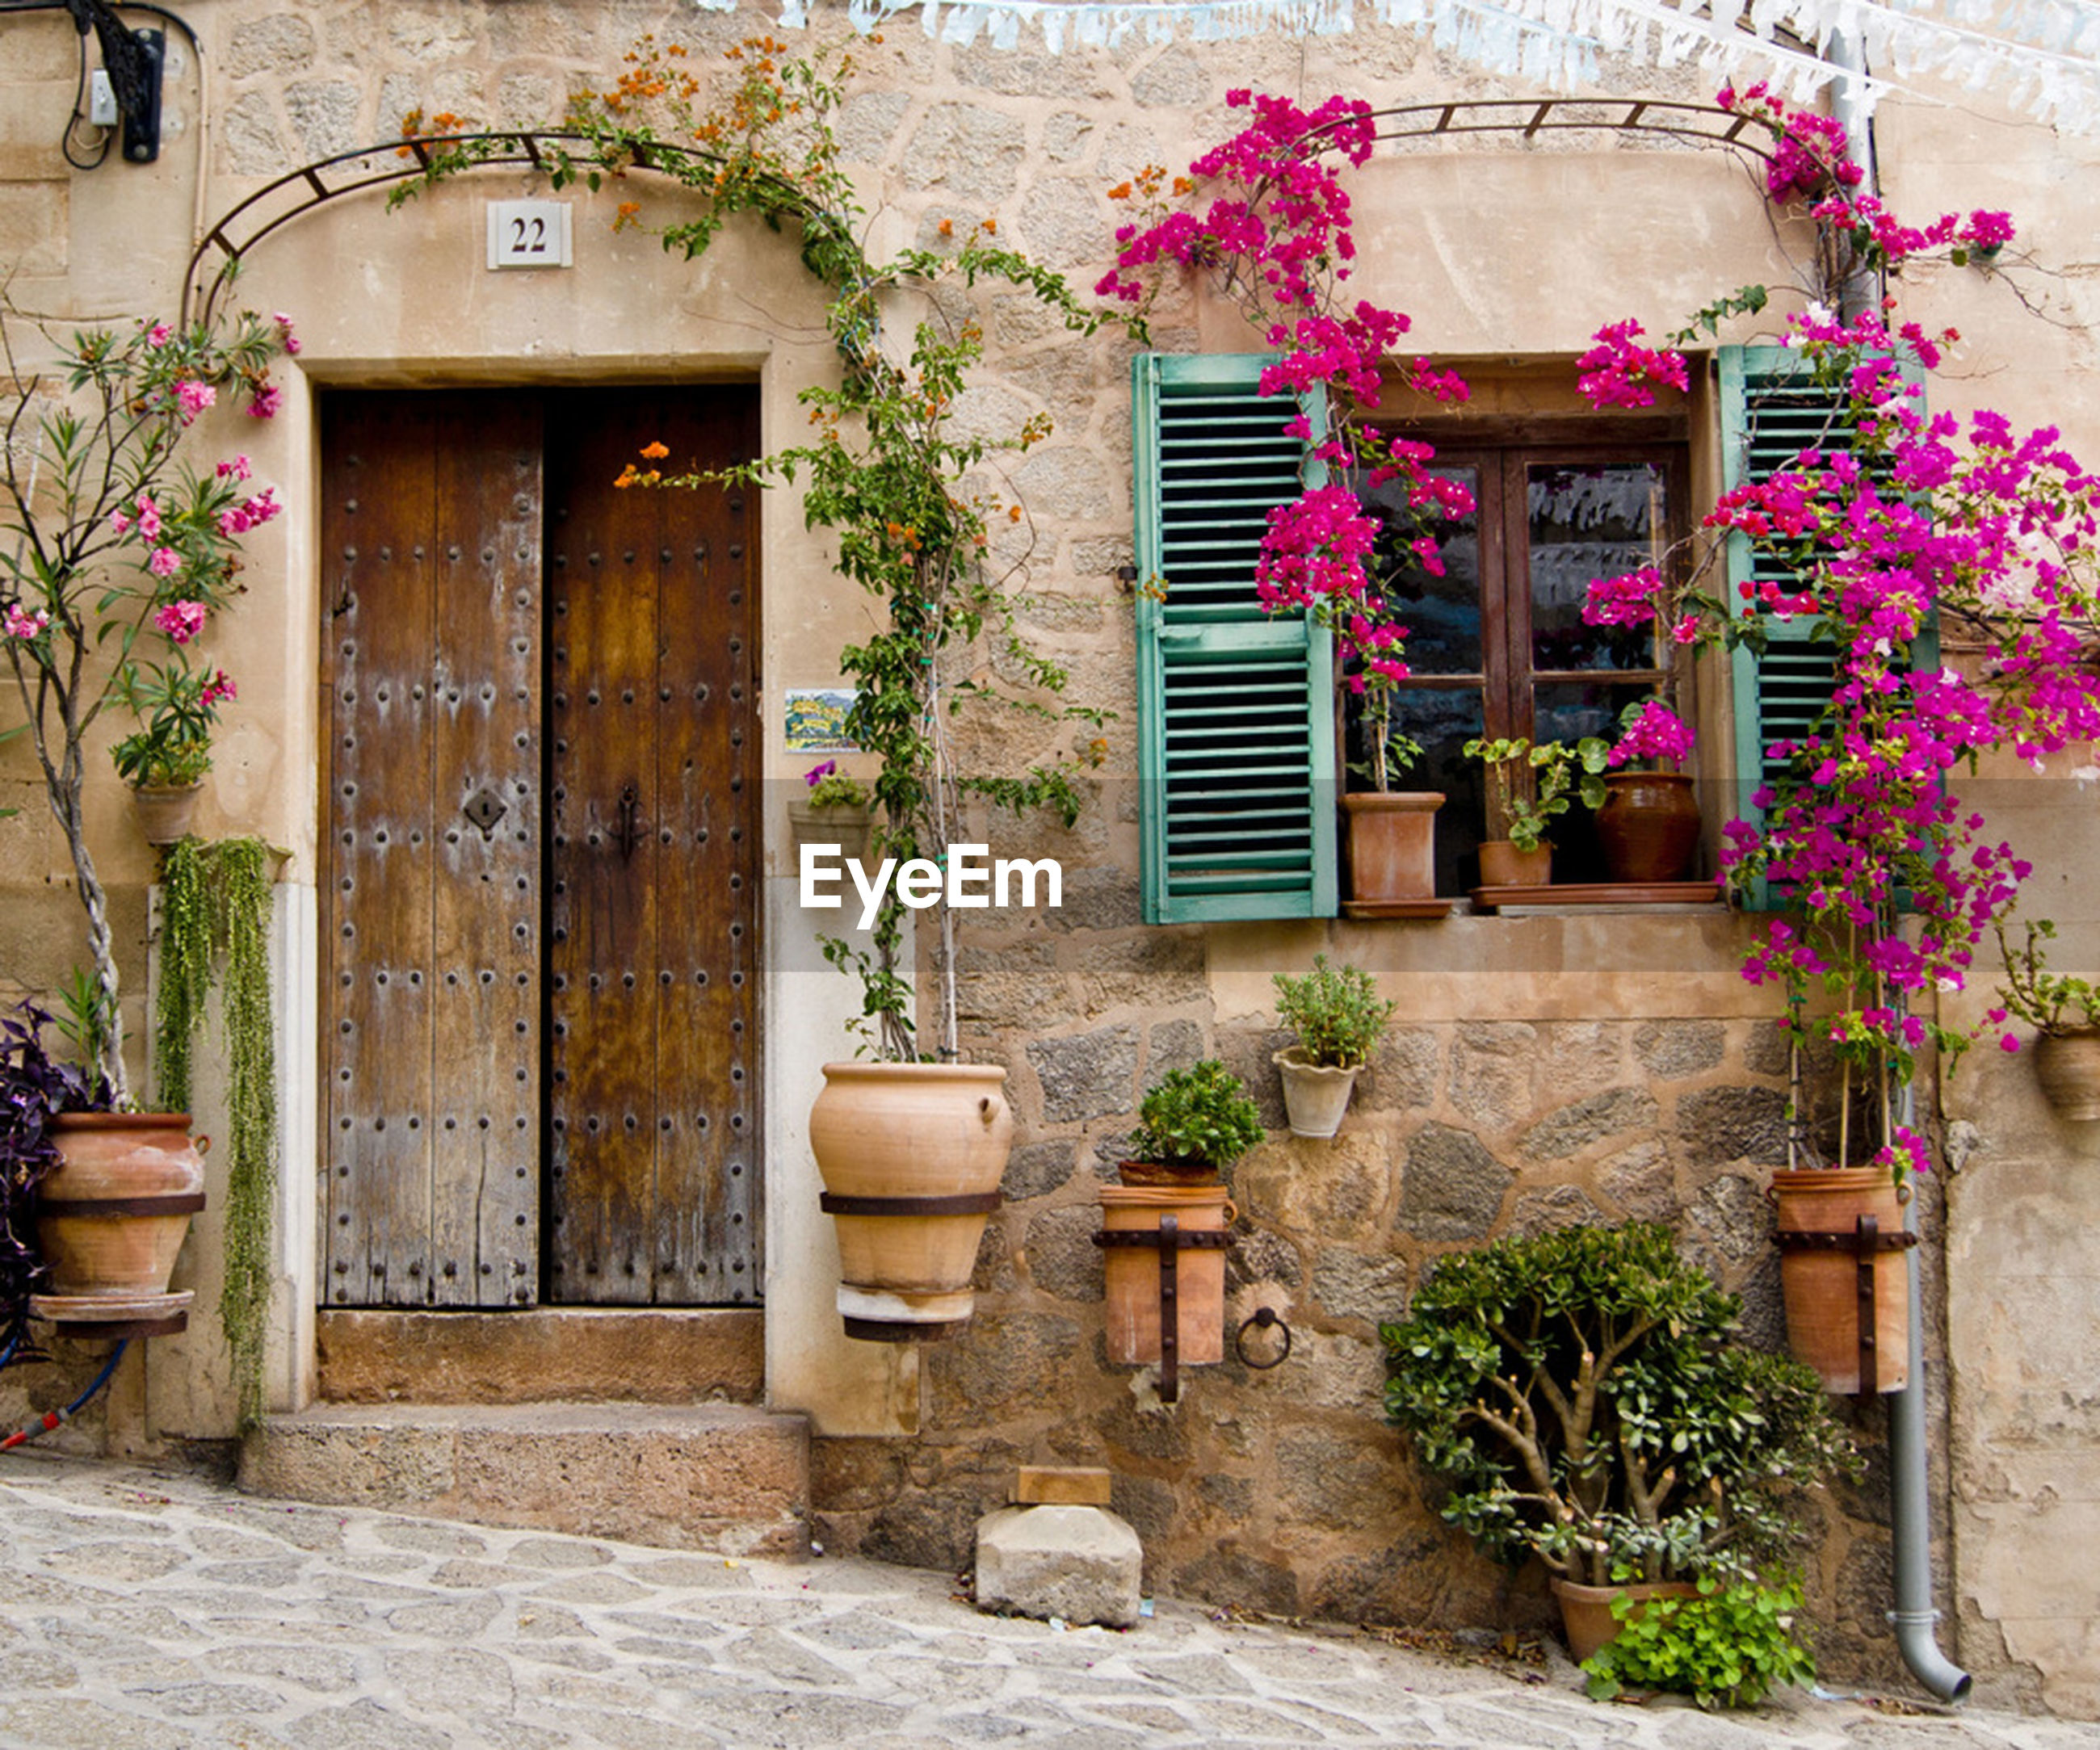 building exterior, architecture, built structure, house, door, flower, plant, potted plant, entrance, window, residential structure, closed, growth, front or back yard, residential building, wall - building feature, wall, day, flower pot, outdoors